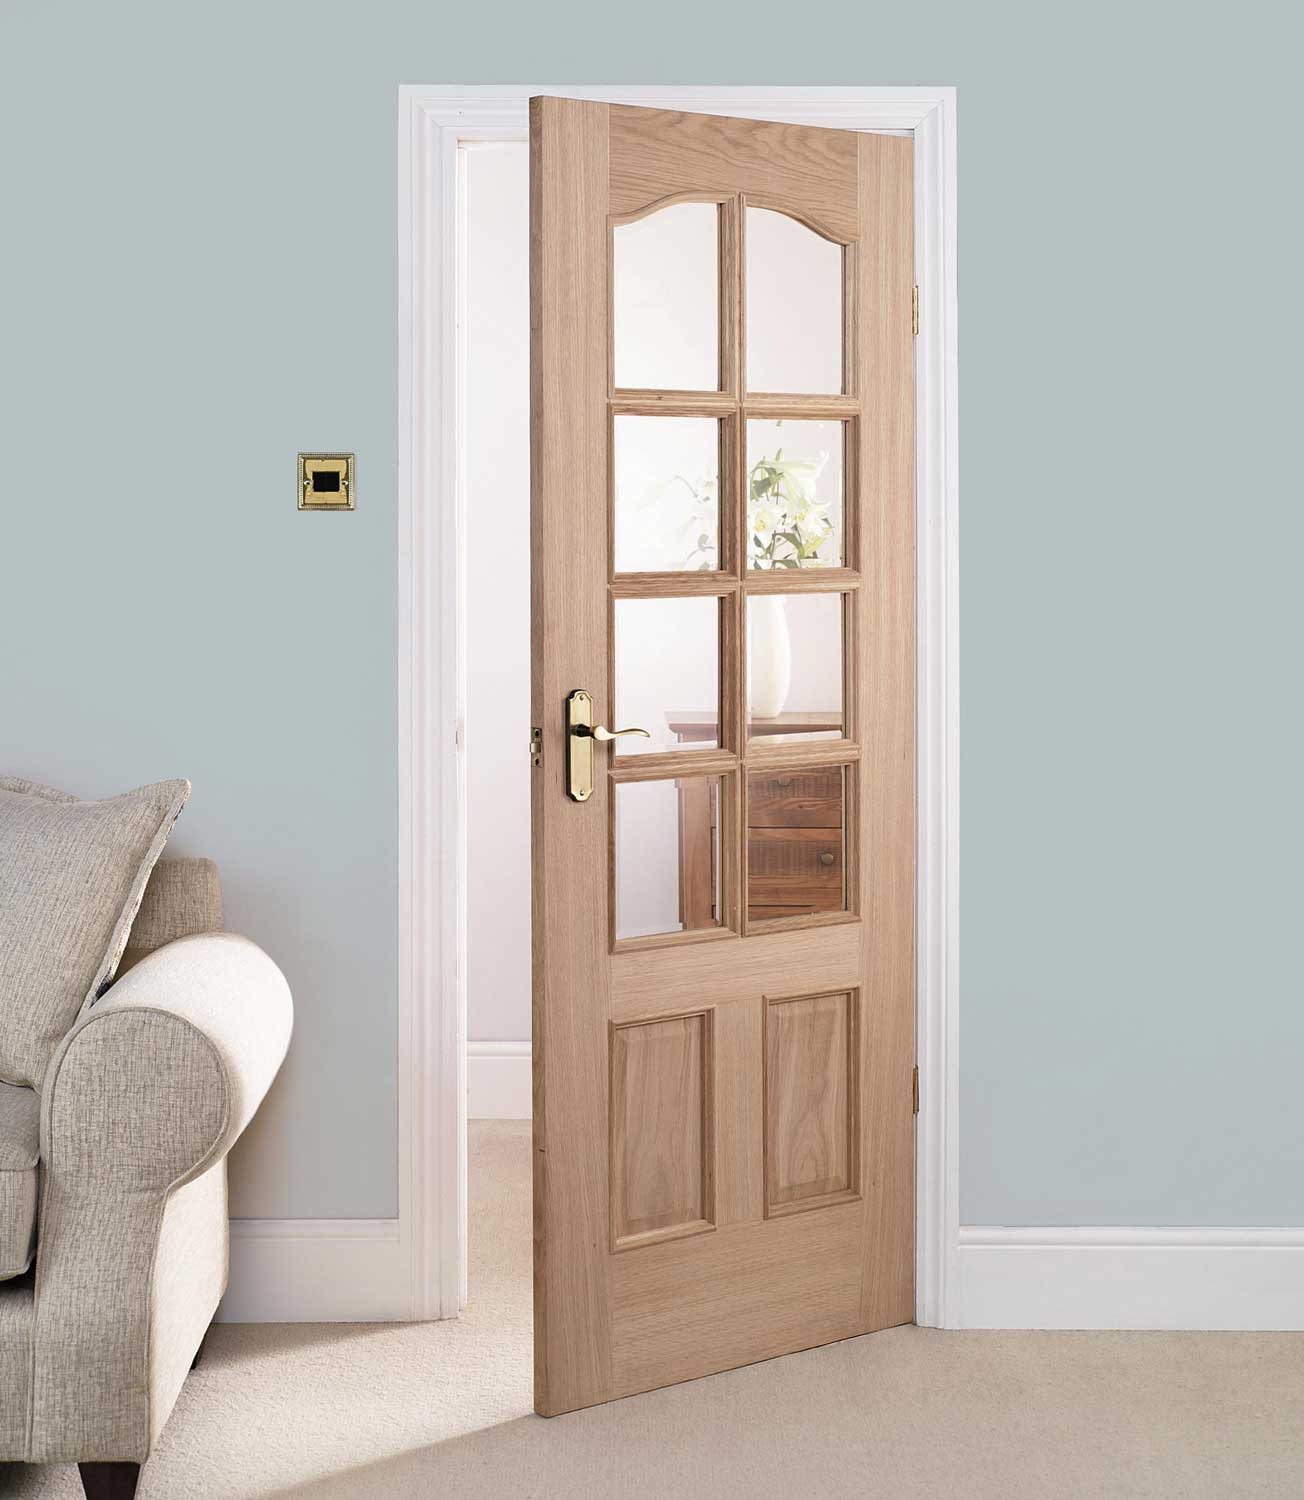 30 x 80 interior door with glass are chosen often for living rooms ...